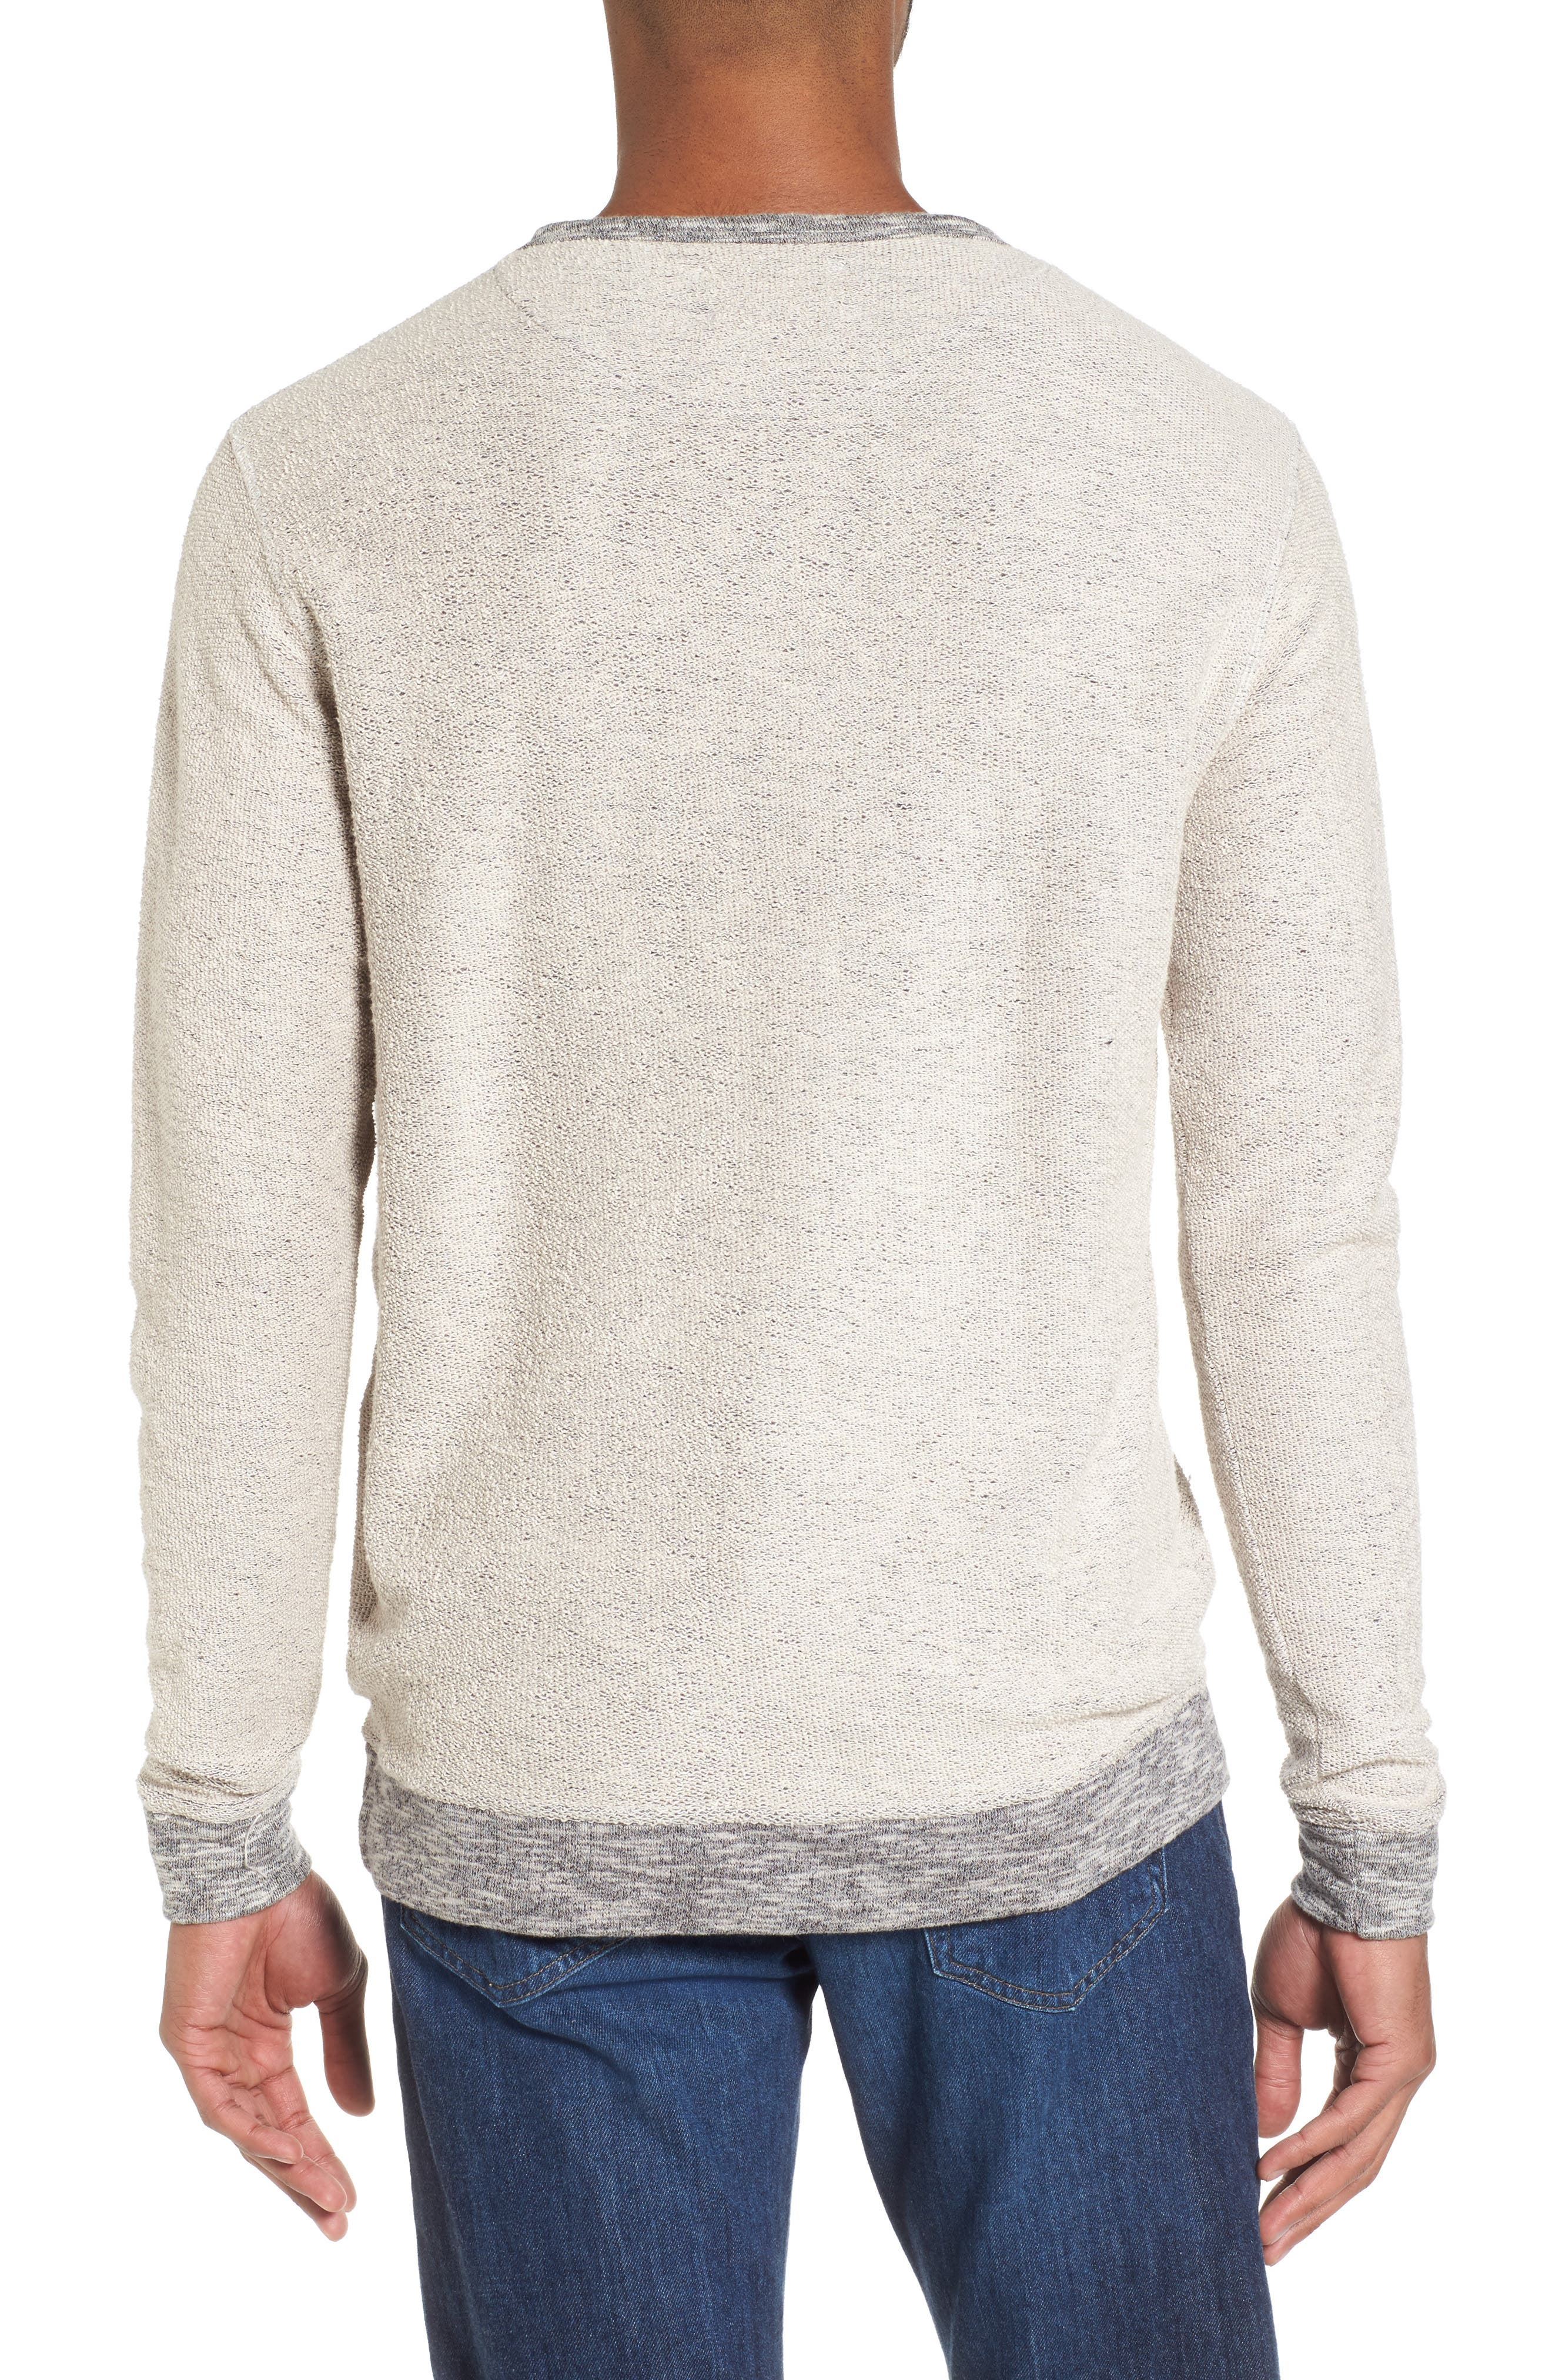 Reverse French Terry Sweatshirt,                             Alternate thumbnail 2, color,                             Grey